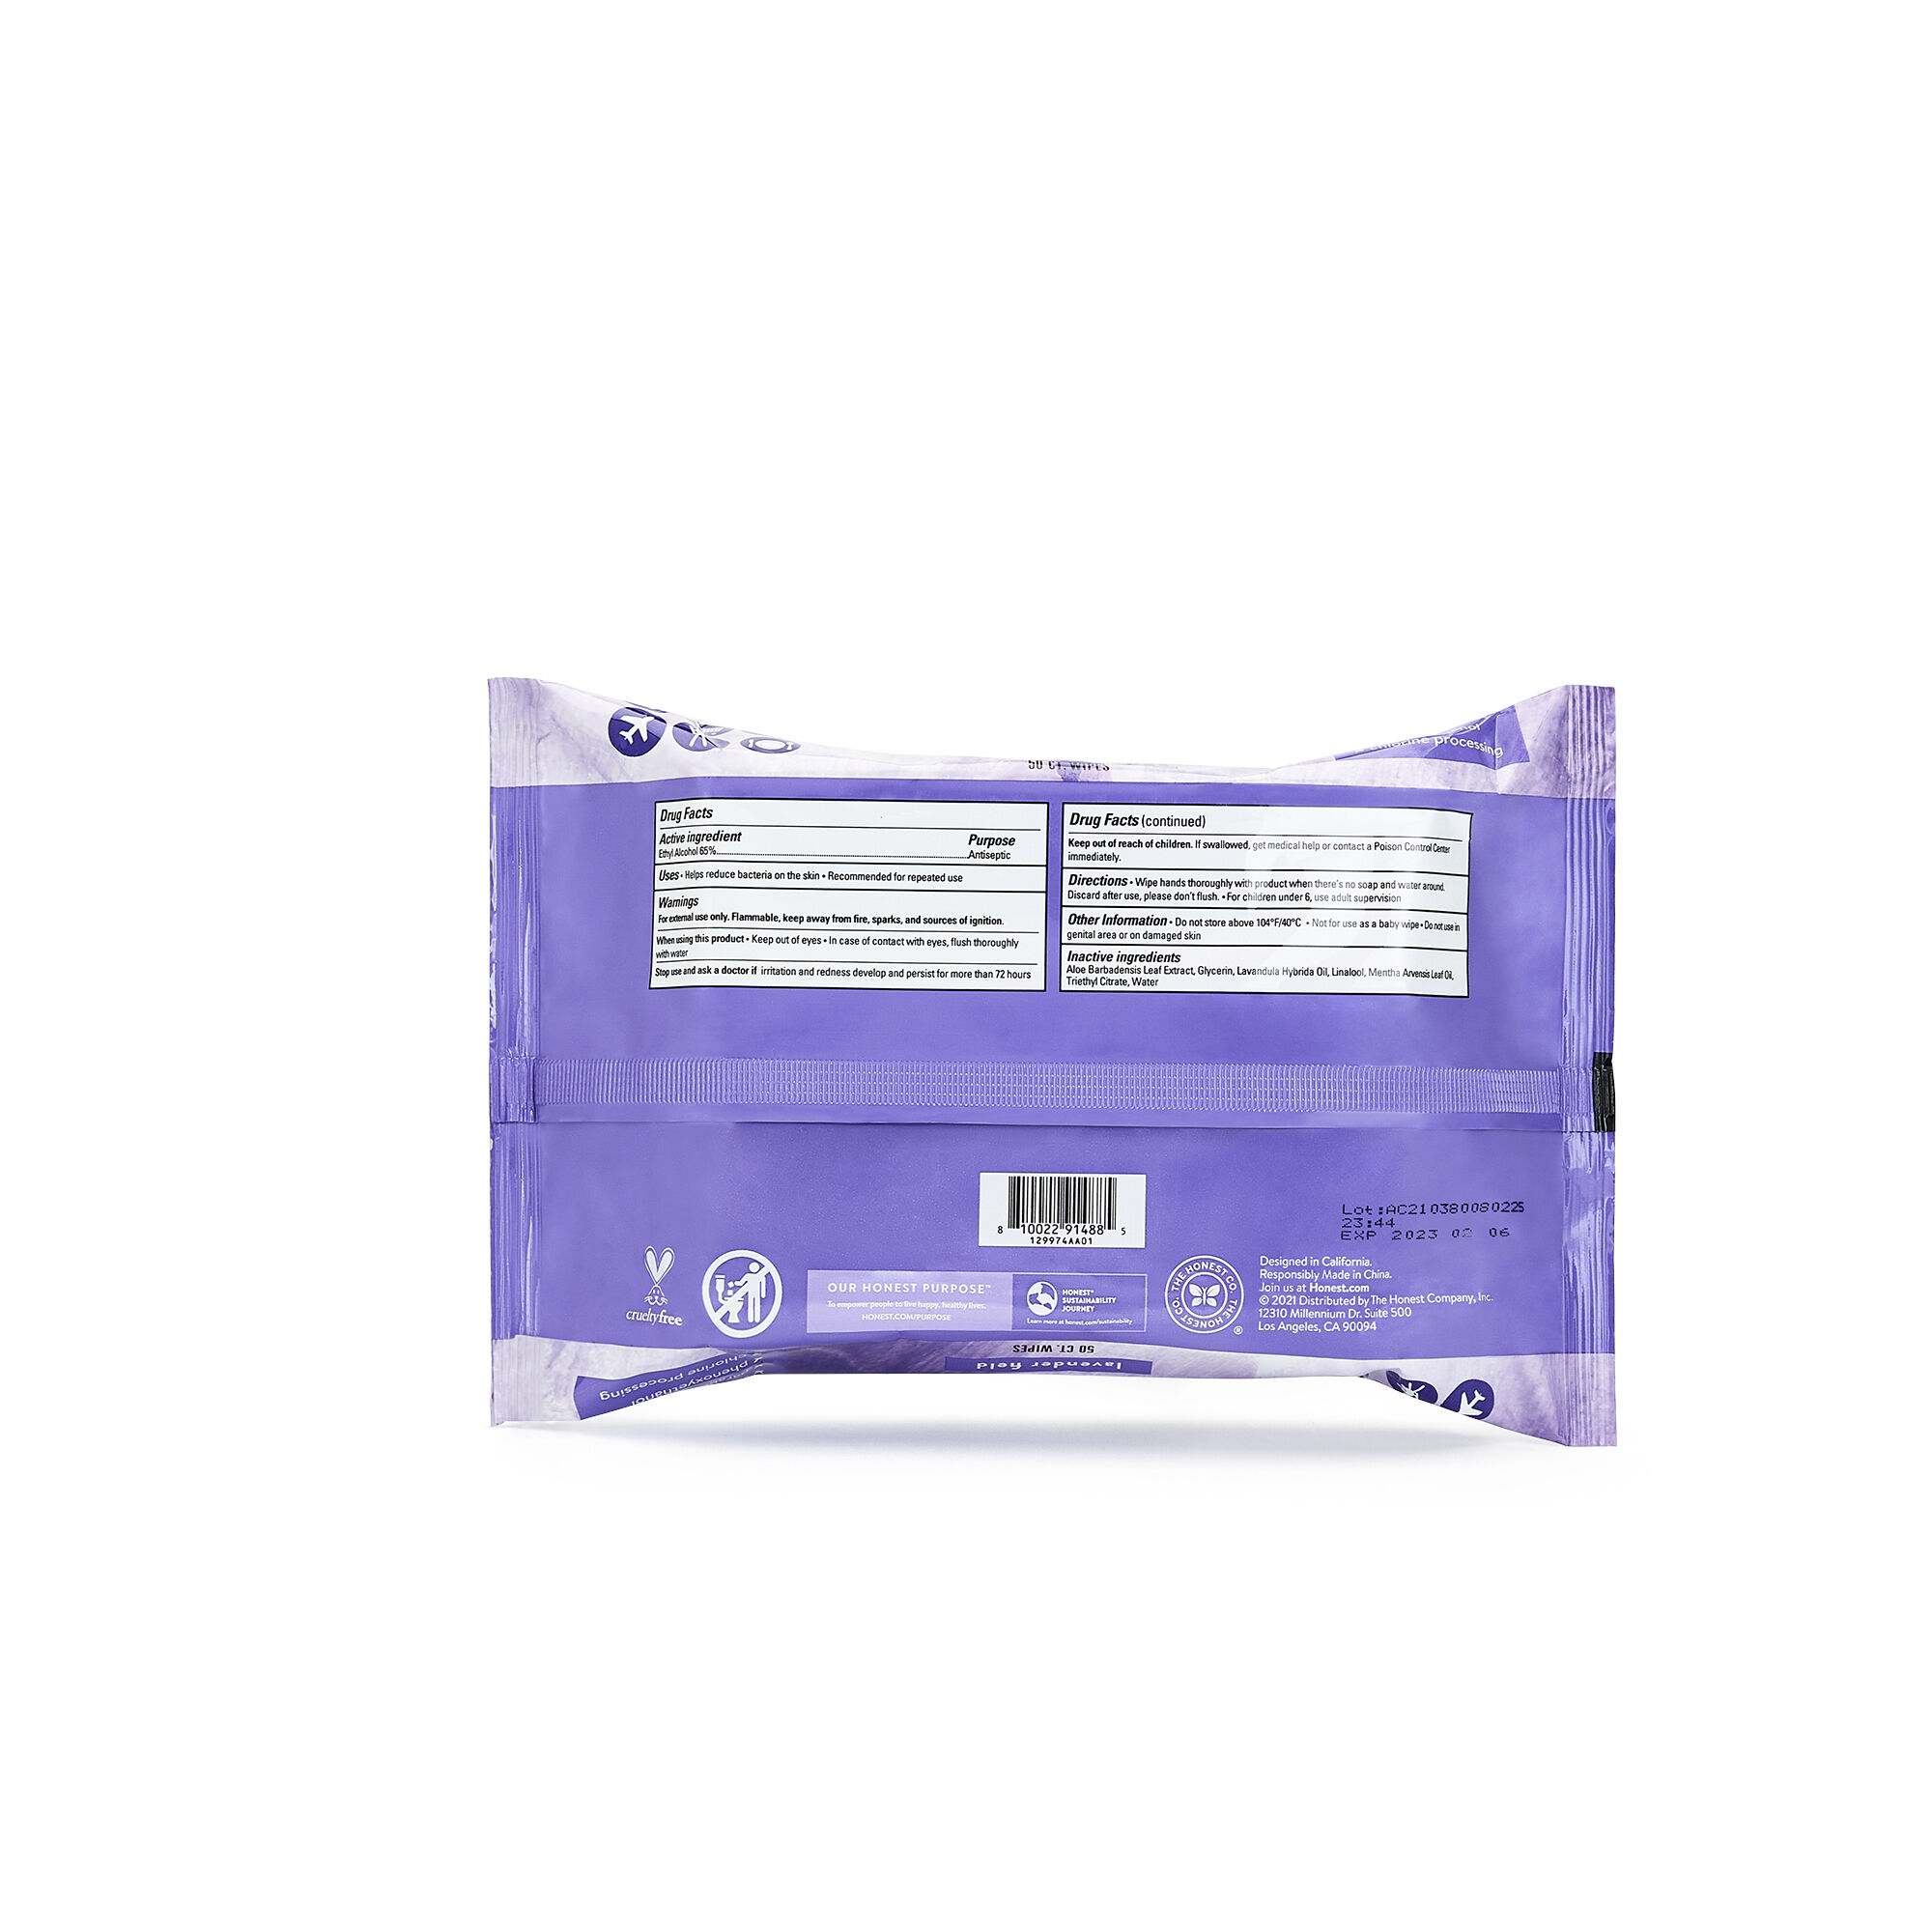 Sanitizing Alcohol Wipes, 50 Count, Lavender Field